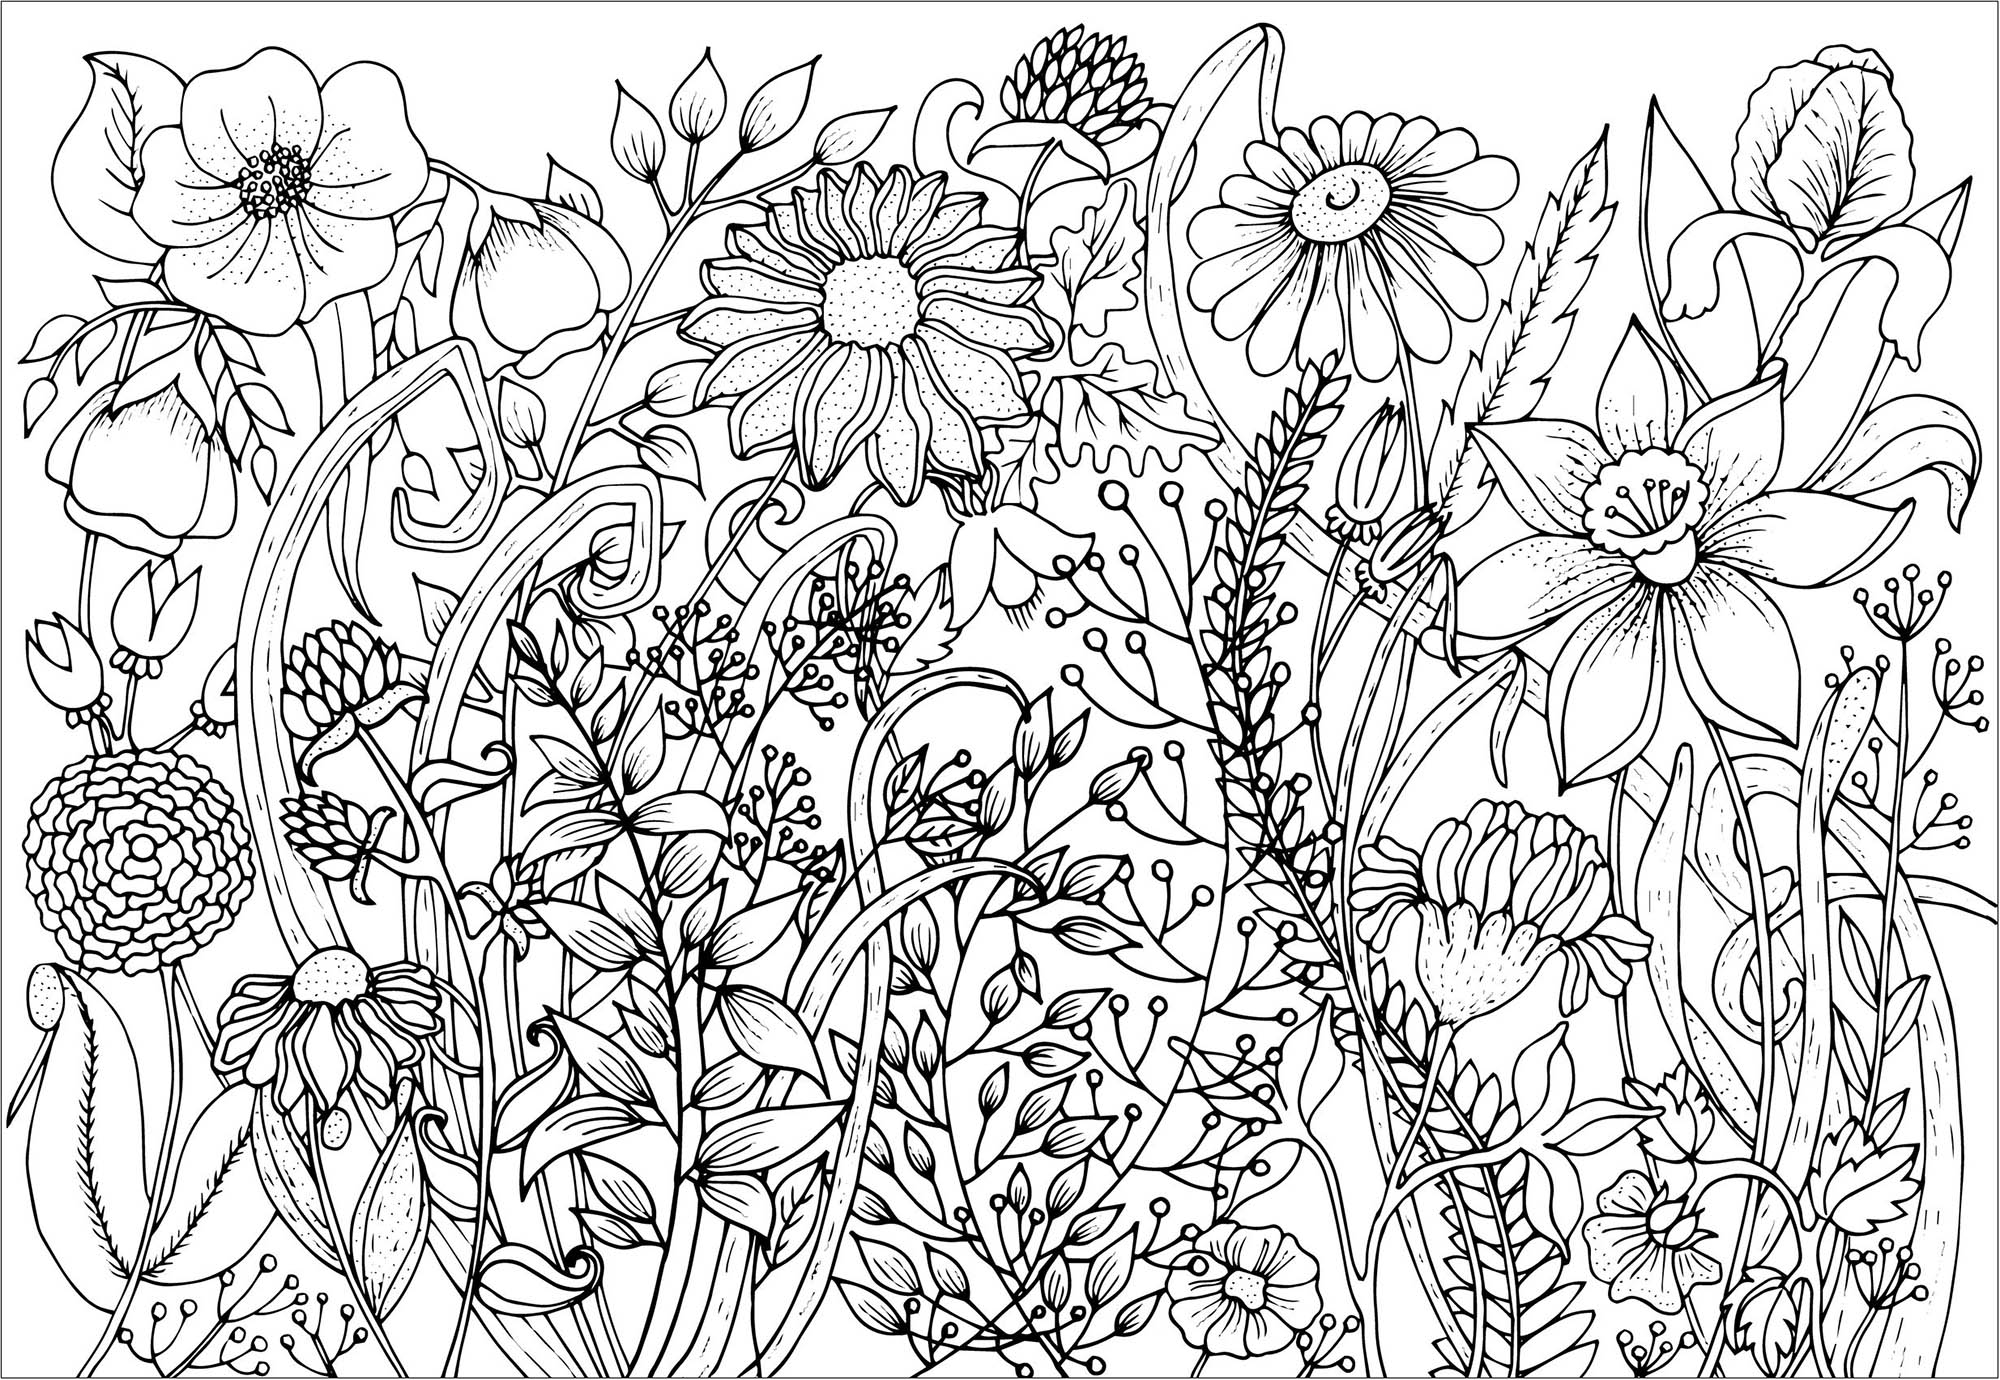 colouring pictures of flowers cute spring flowers flowers adult coloring pages of colouring pictures flowers